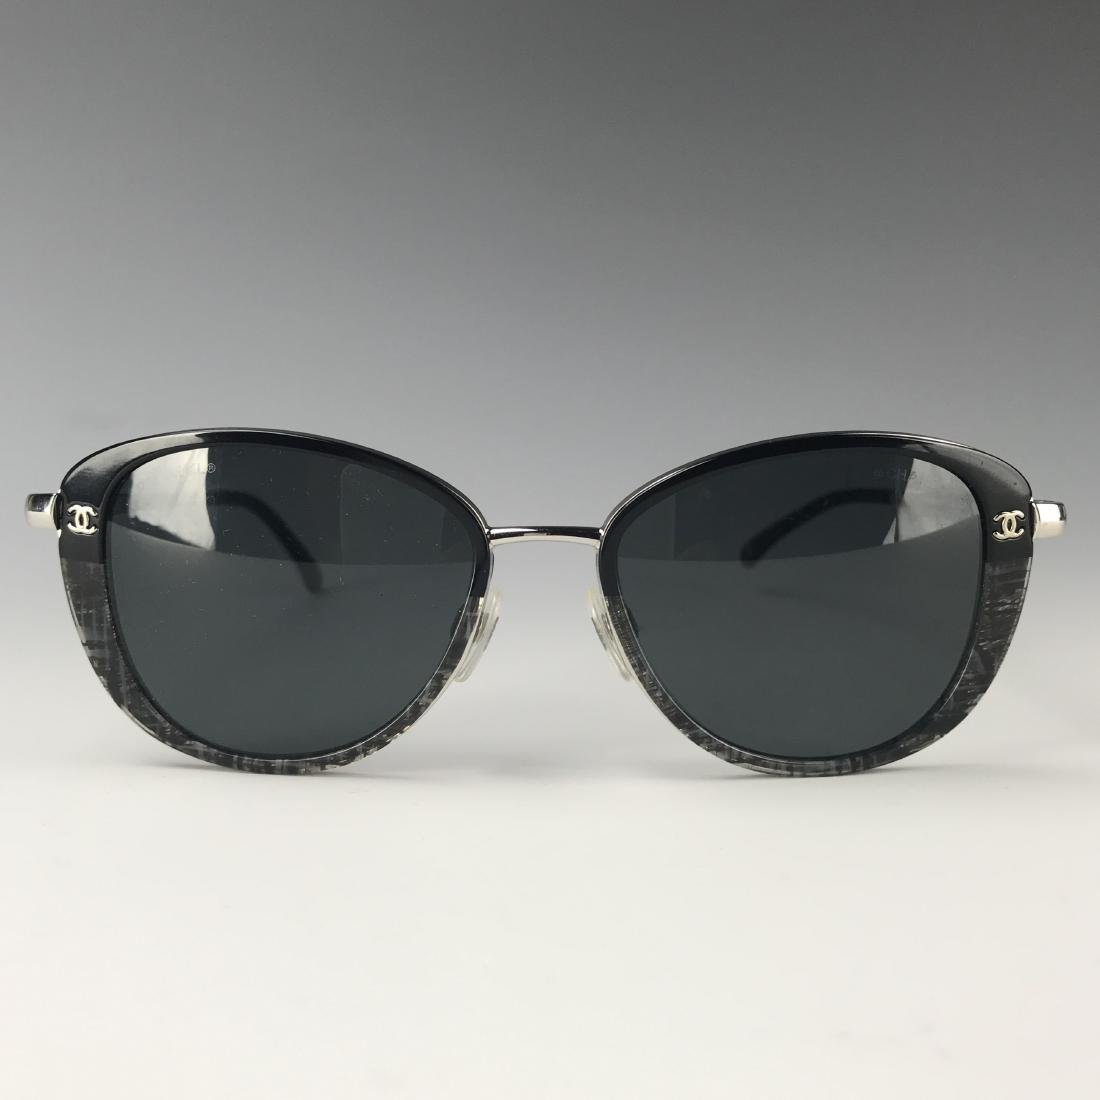 Authentic Chanel Sunglasses - 2